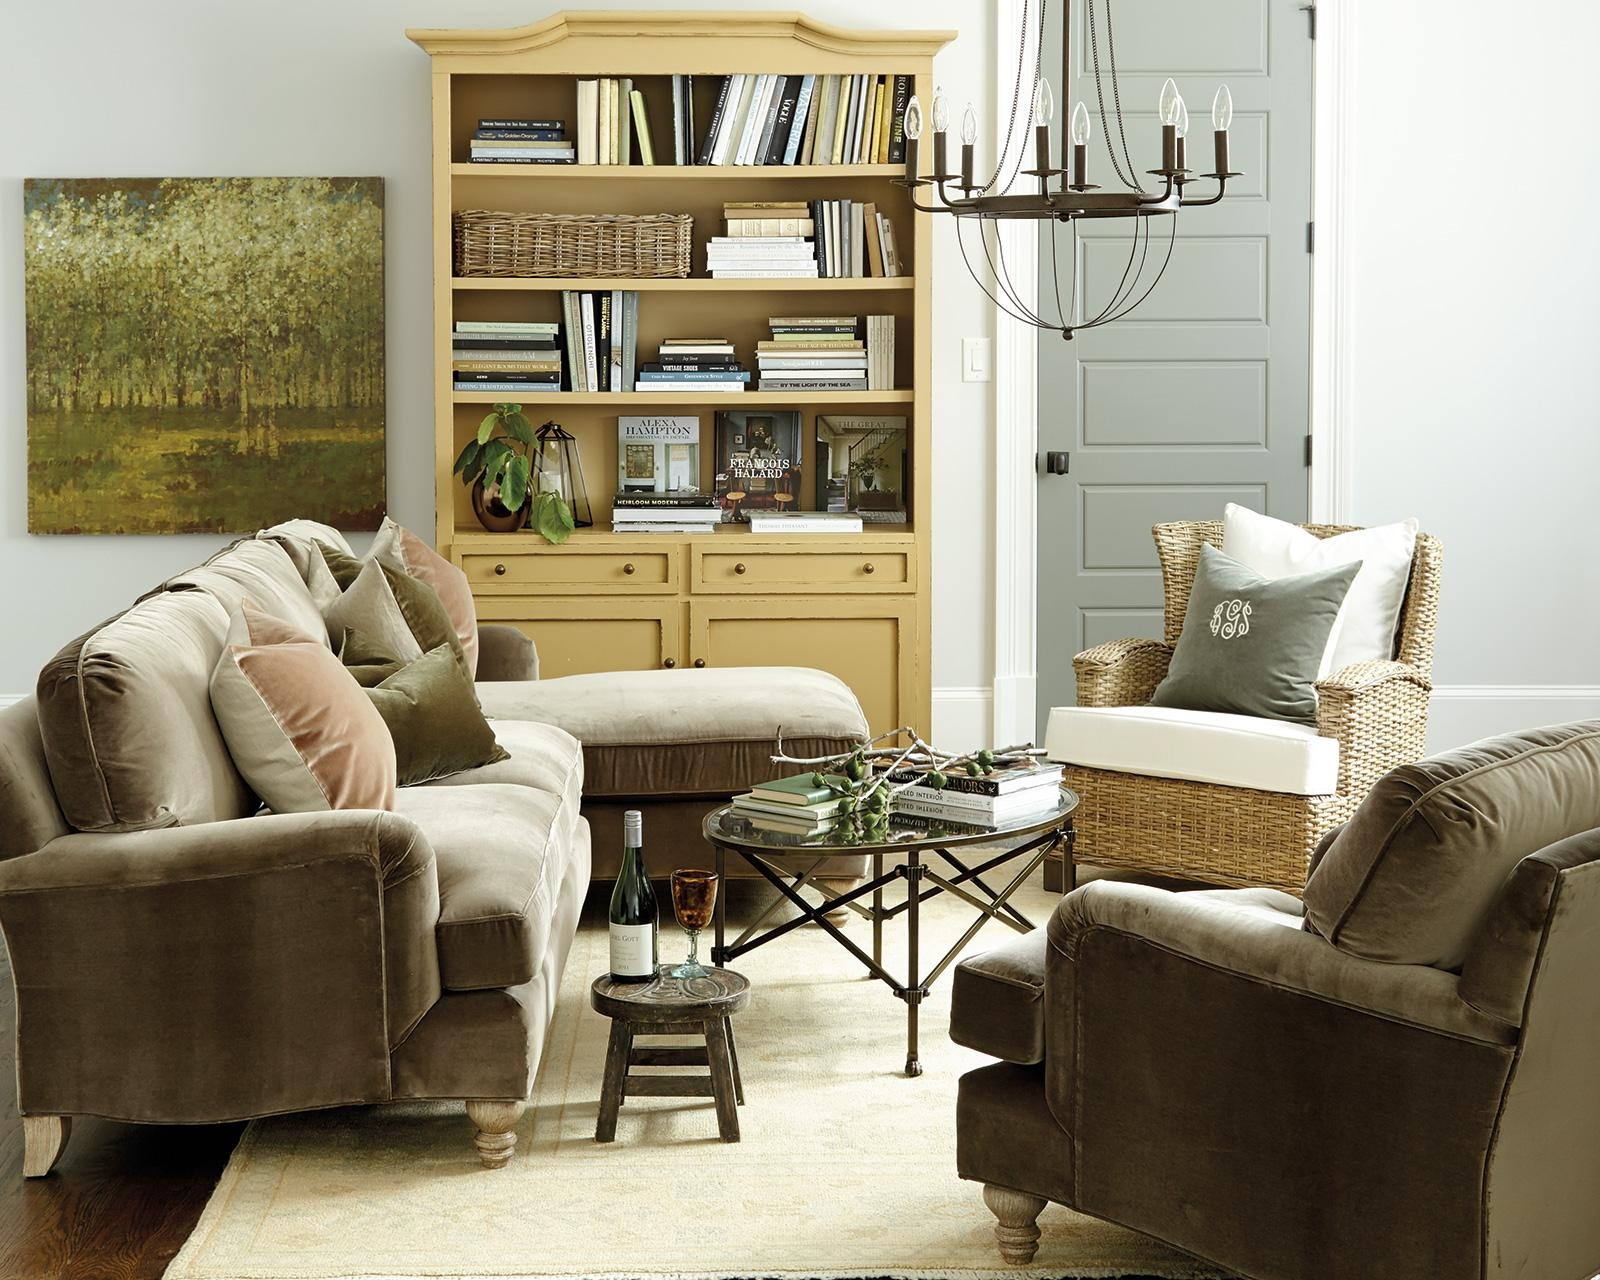 How To Match A Coffee Table To Your Sectional – How To Decorate Within Coffee Table For Sectional Sofa (Image 12 of 15)